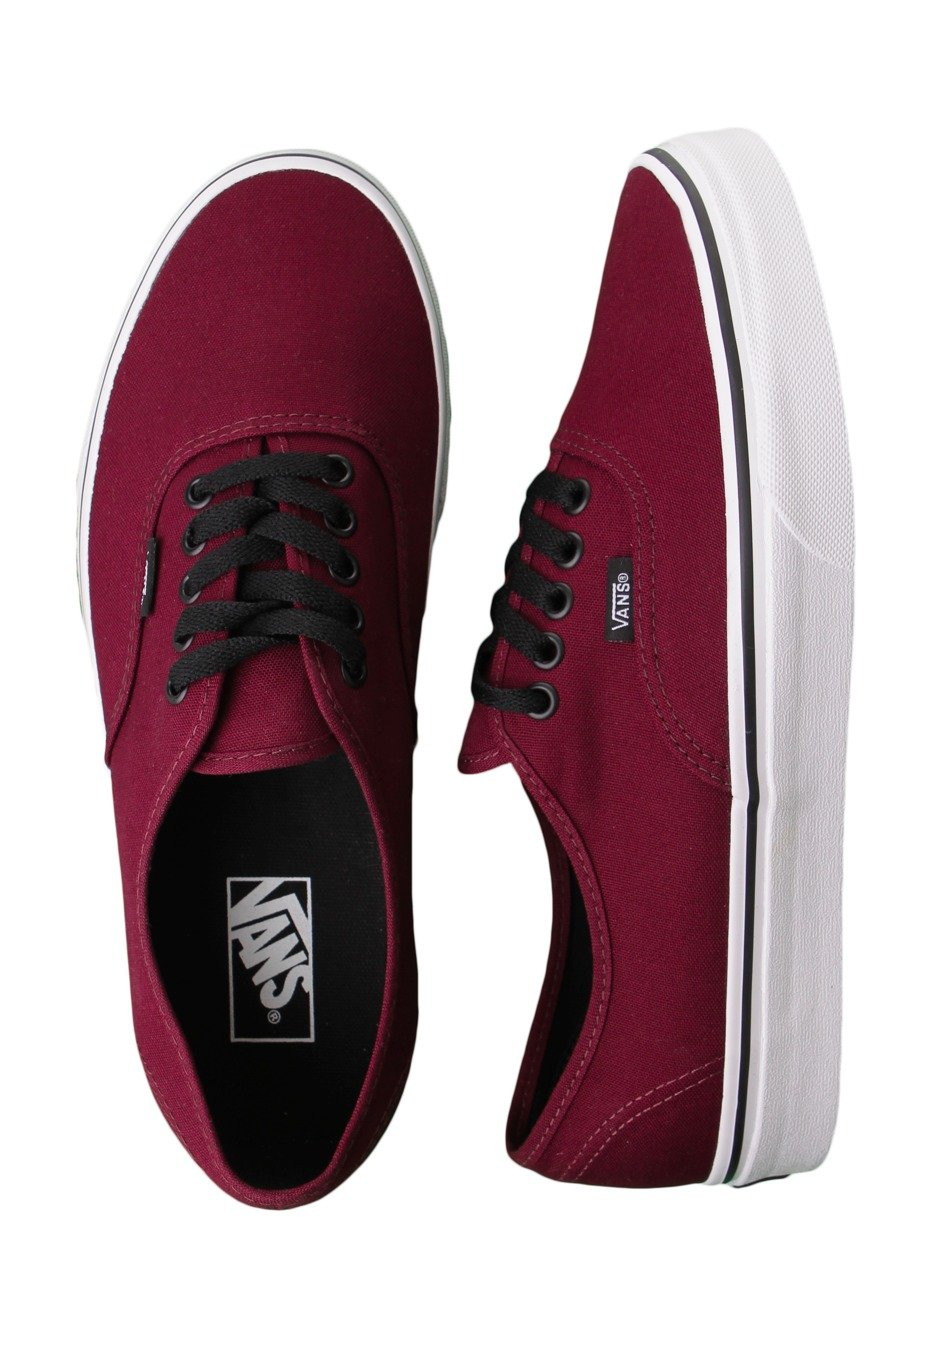 97719a3ba9ea Vans - Authentic Port Royale Black - Shoes - Impericon.com UK